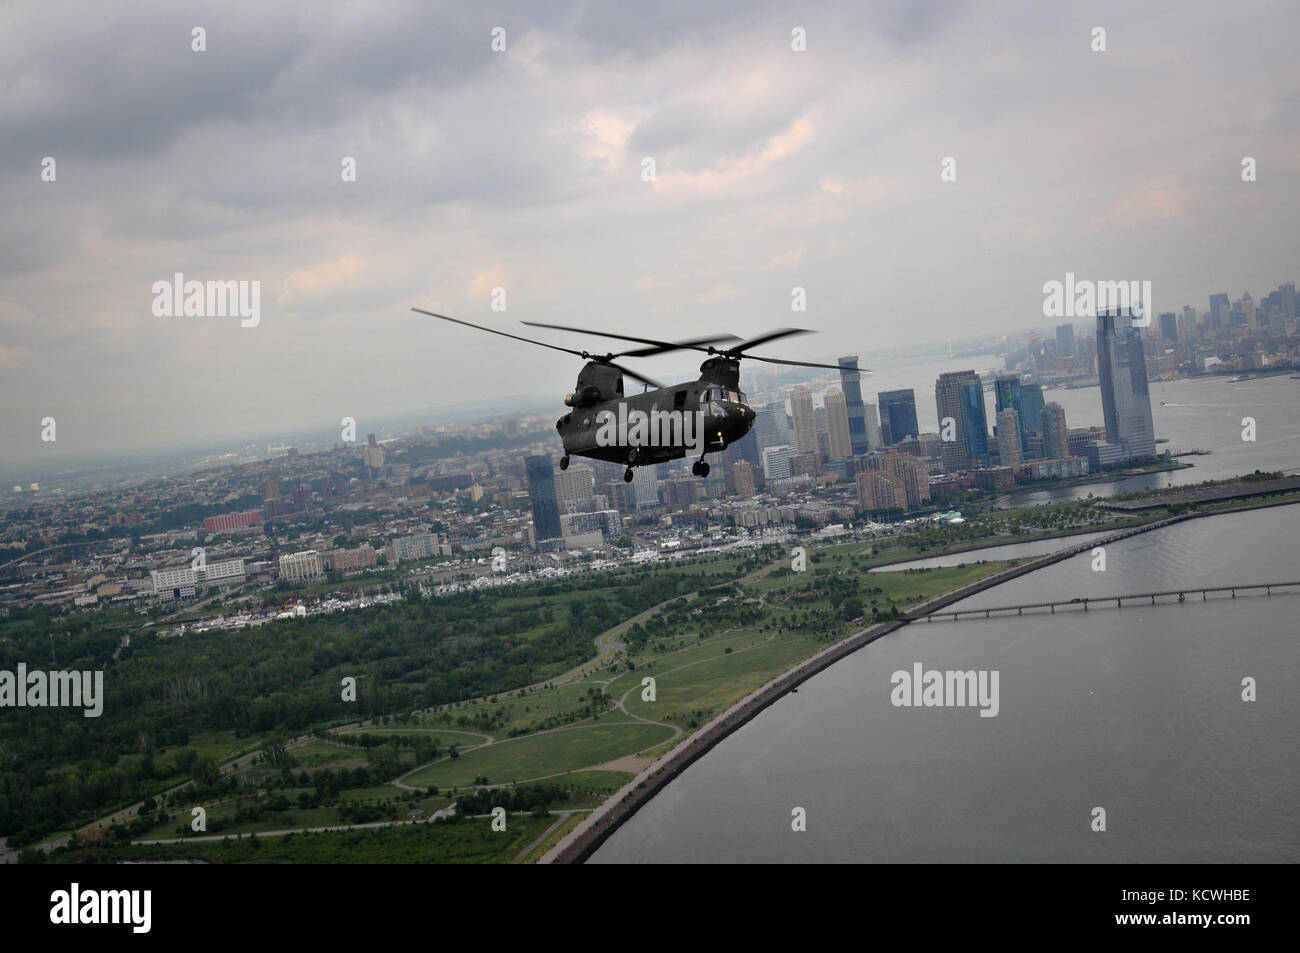 A South Carolina Army National Guard (SCARNG) CH-47D Chinook helicopter flies in front in proximity of Manhattan - Stock Image